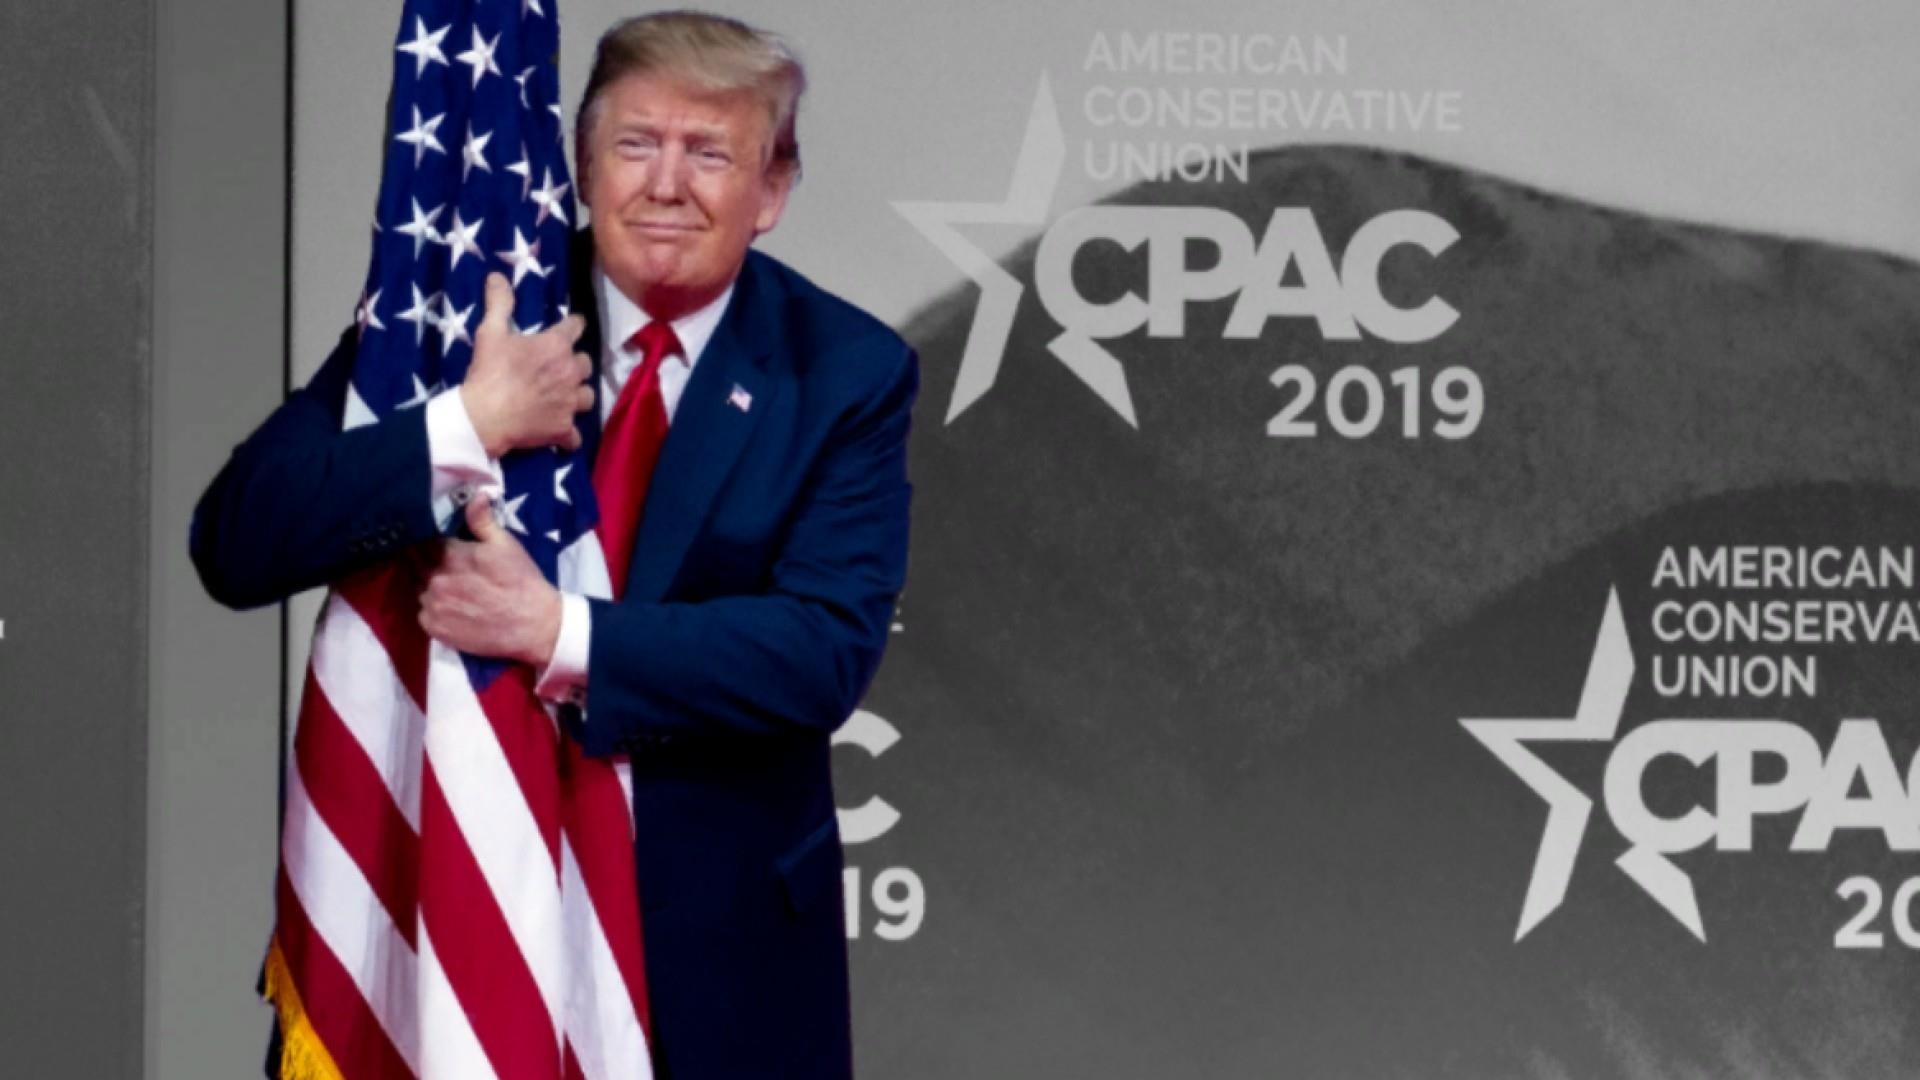 Trump hugs U.S. flag, calls 'bulls**t' on Russia in unhinged CPAC speech